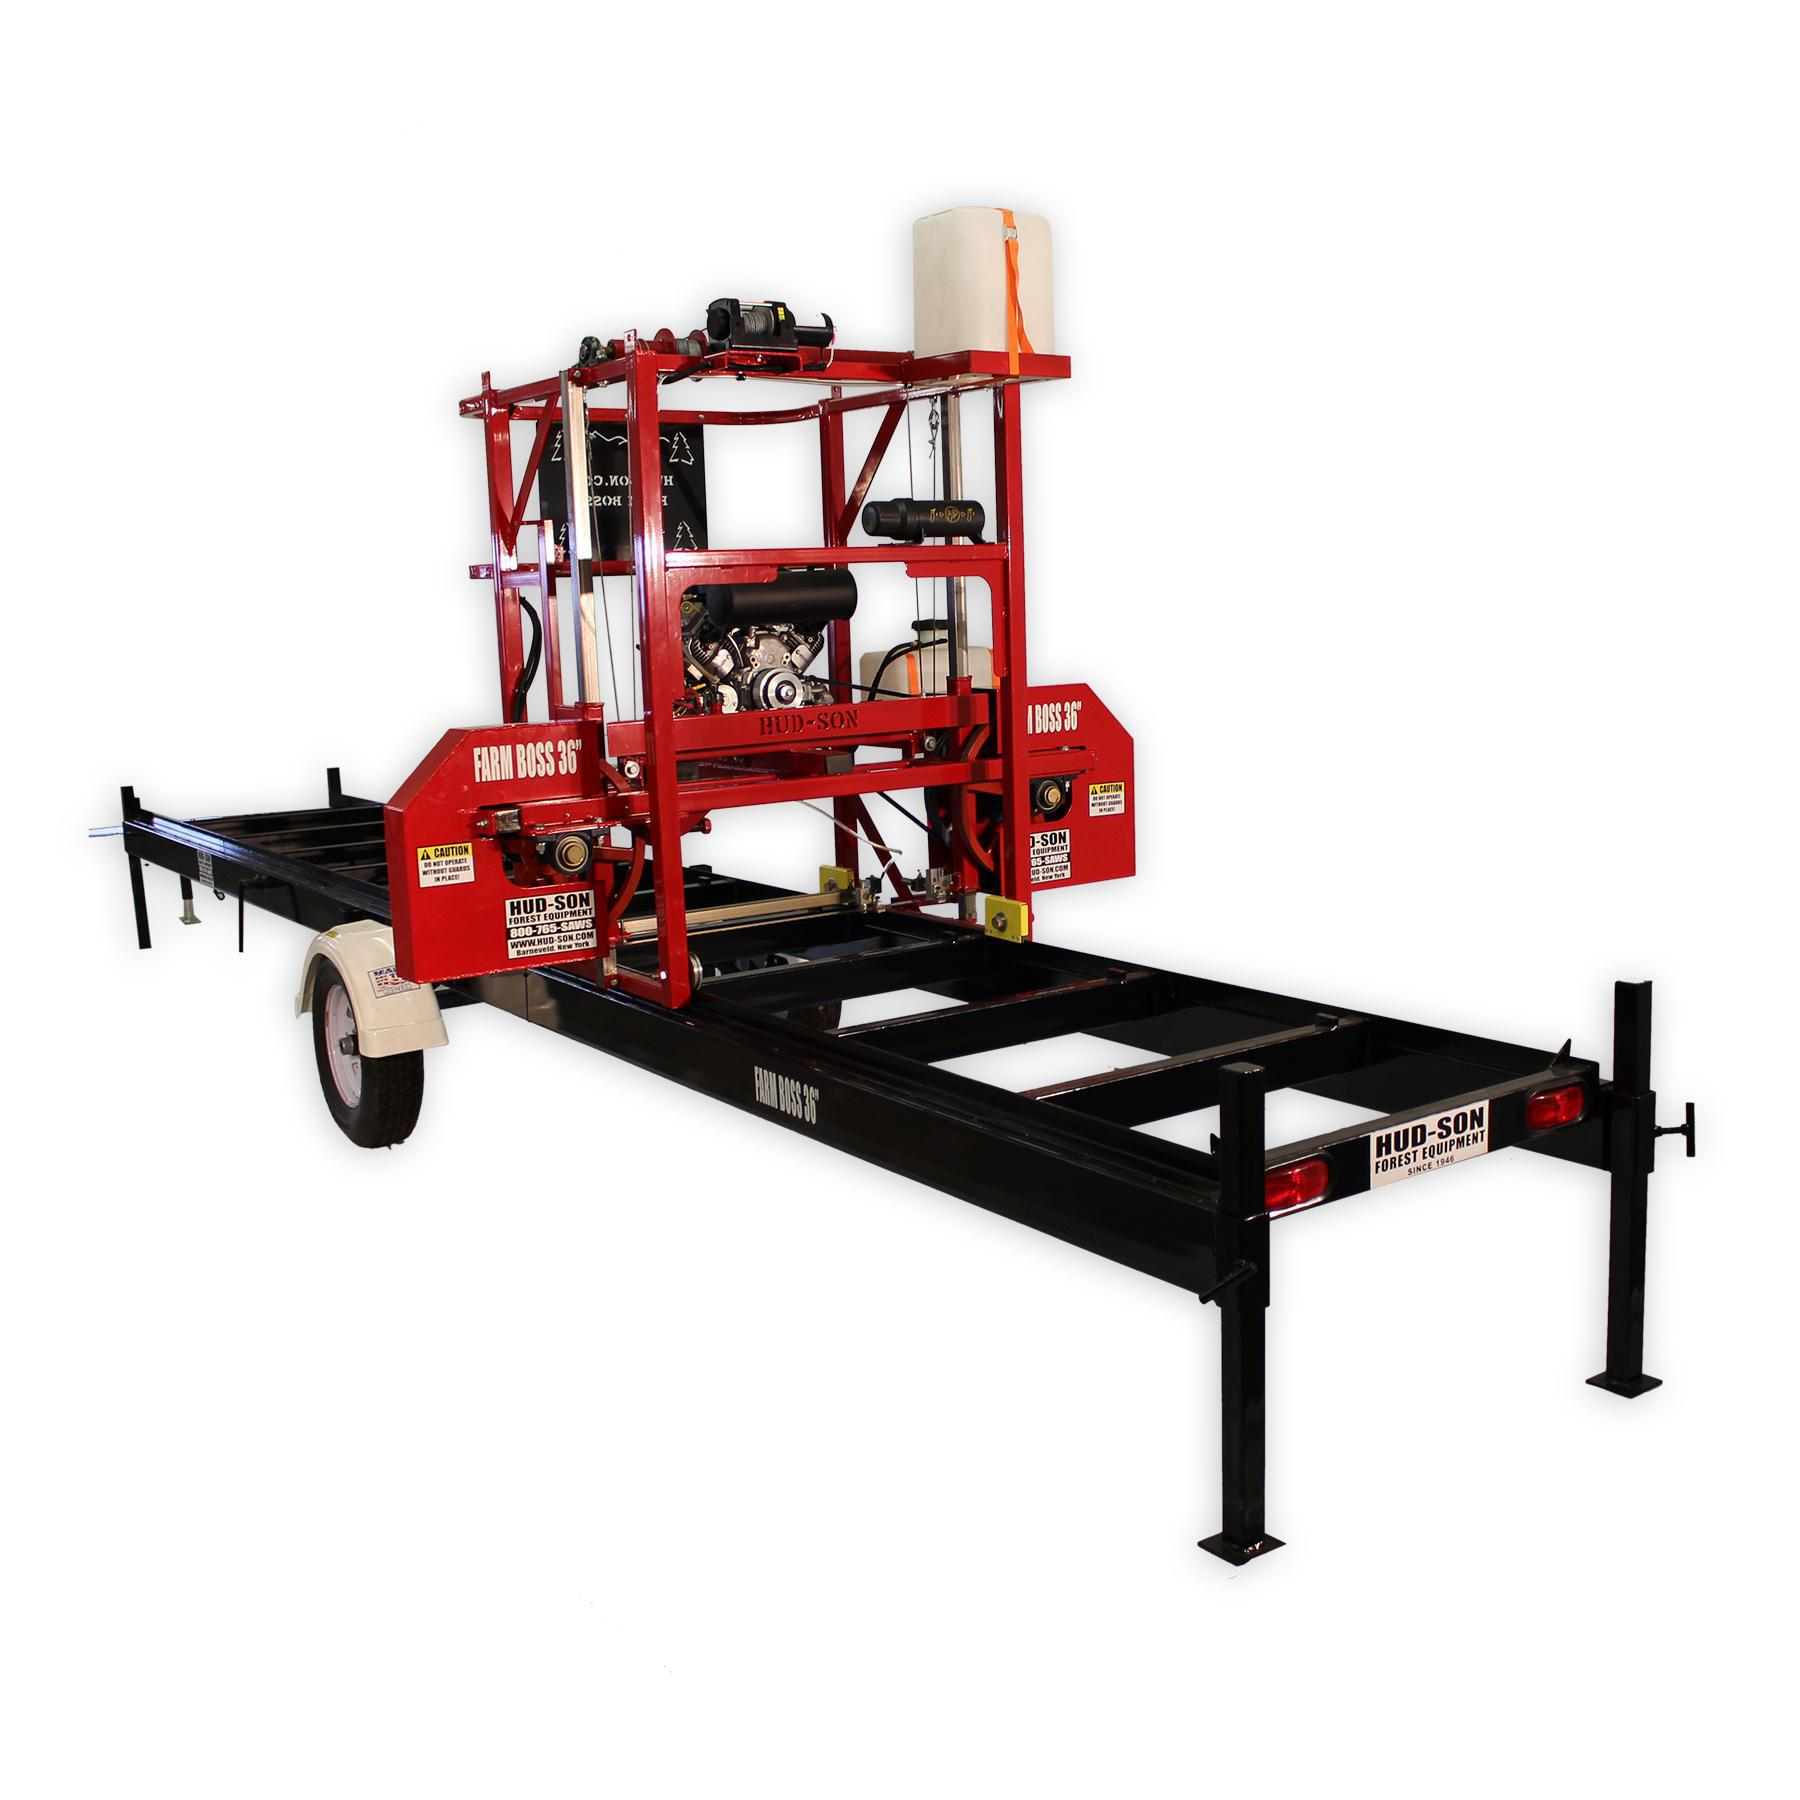 FarmBoss-23 Farm Boss 36 Portable Sawmill